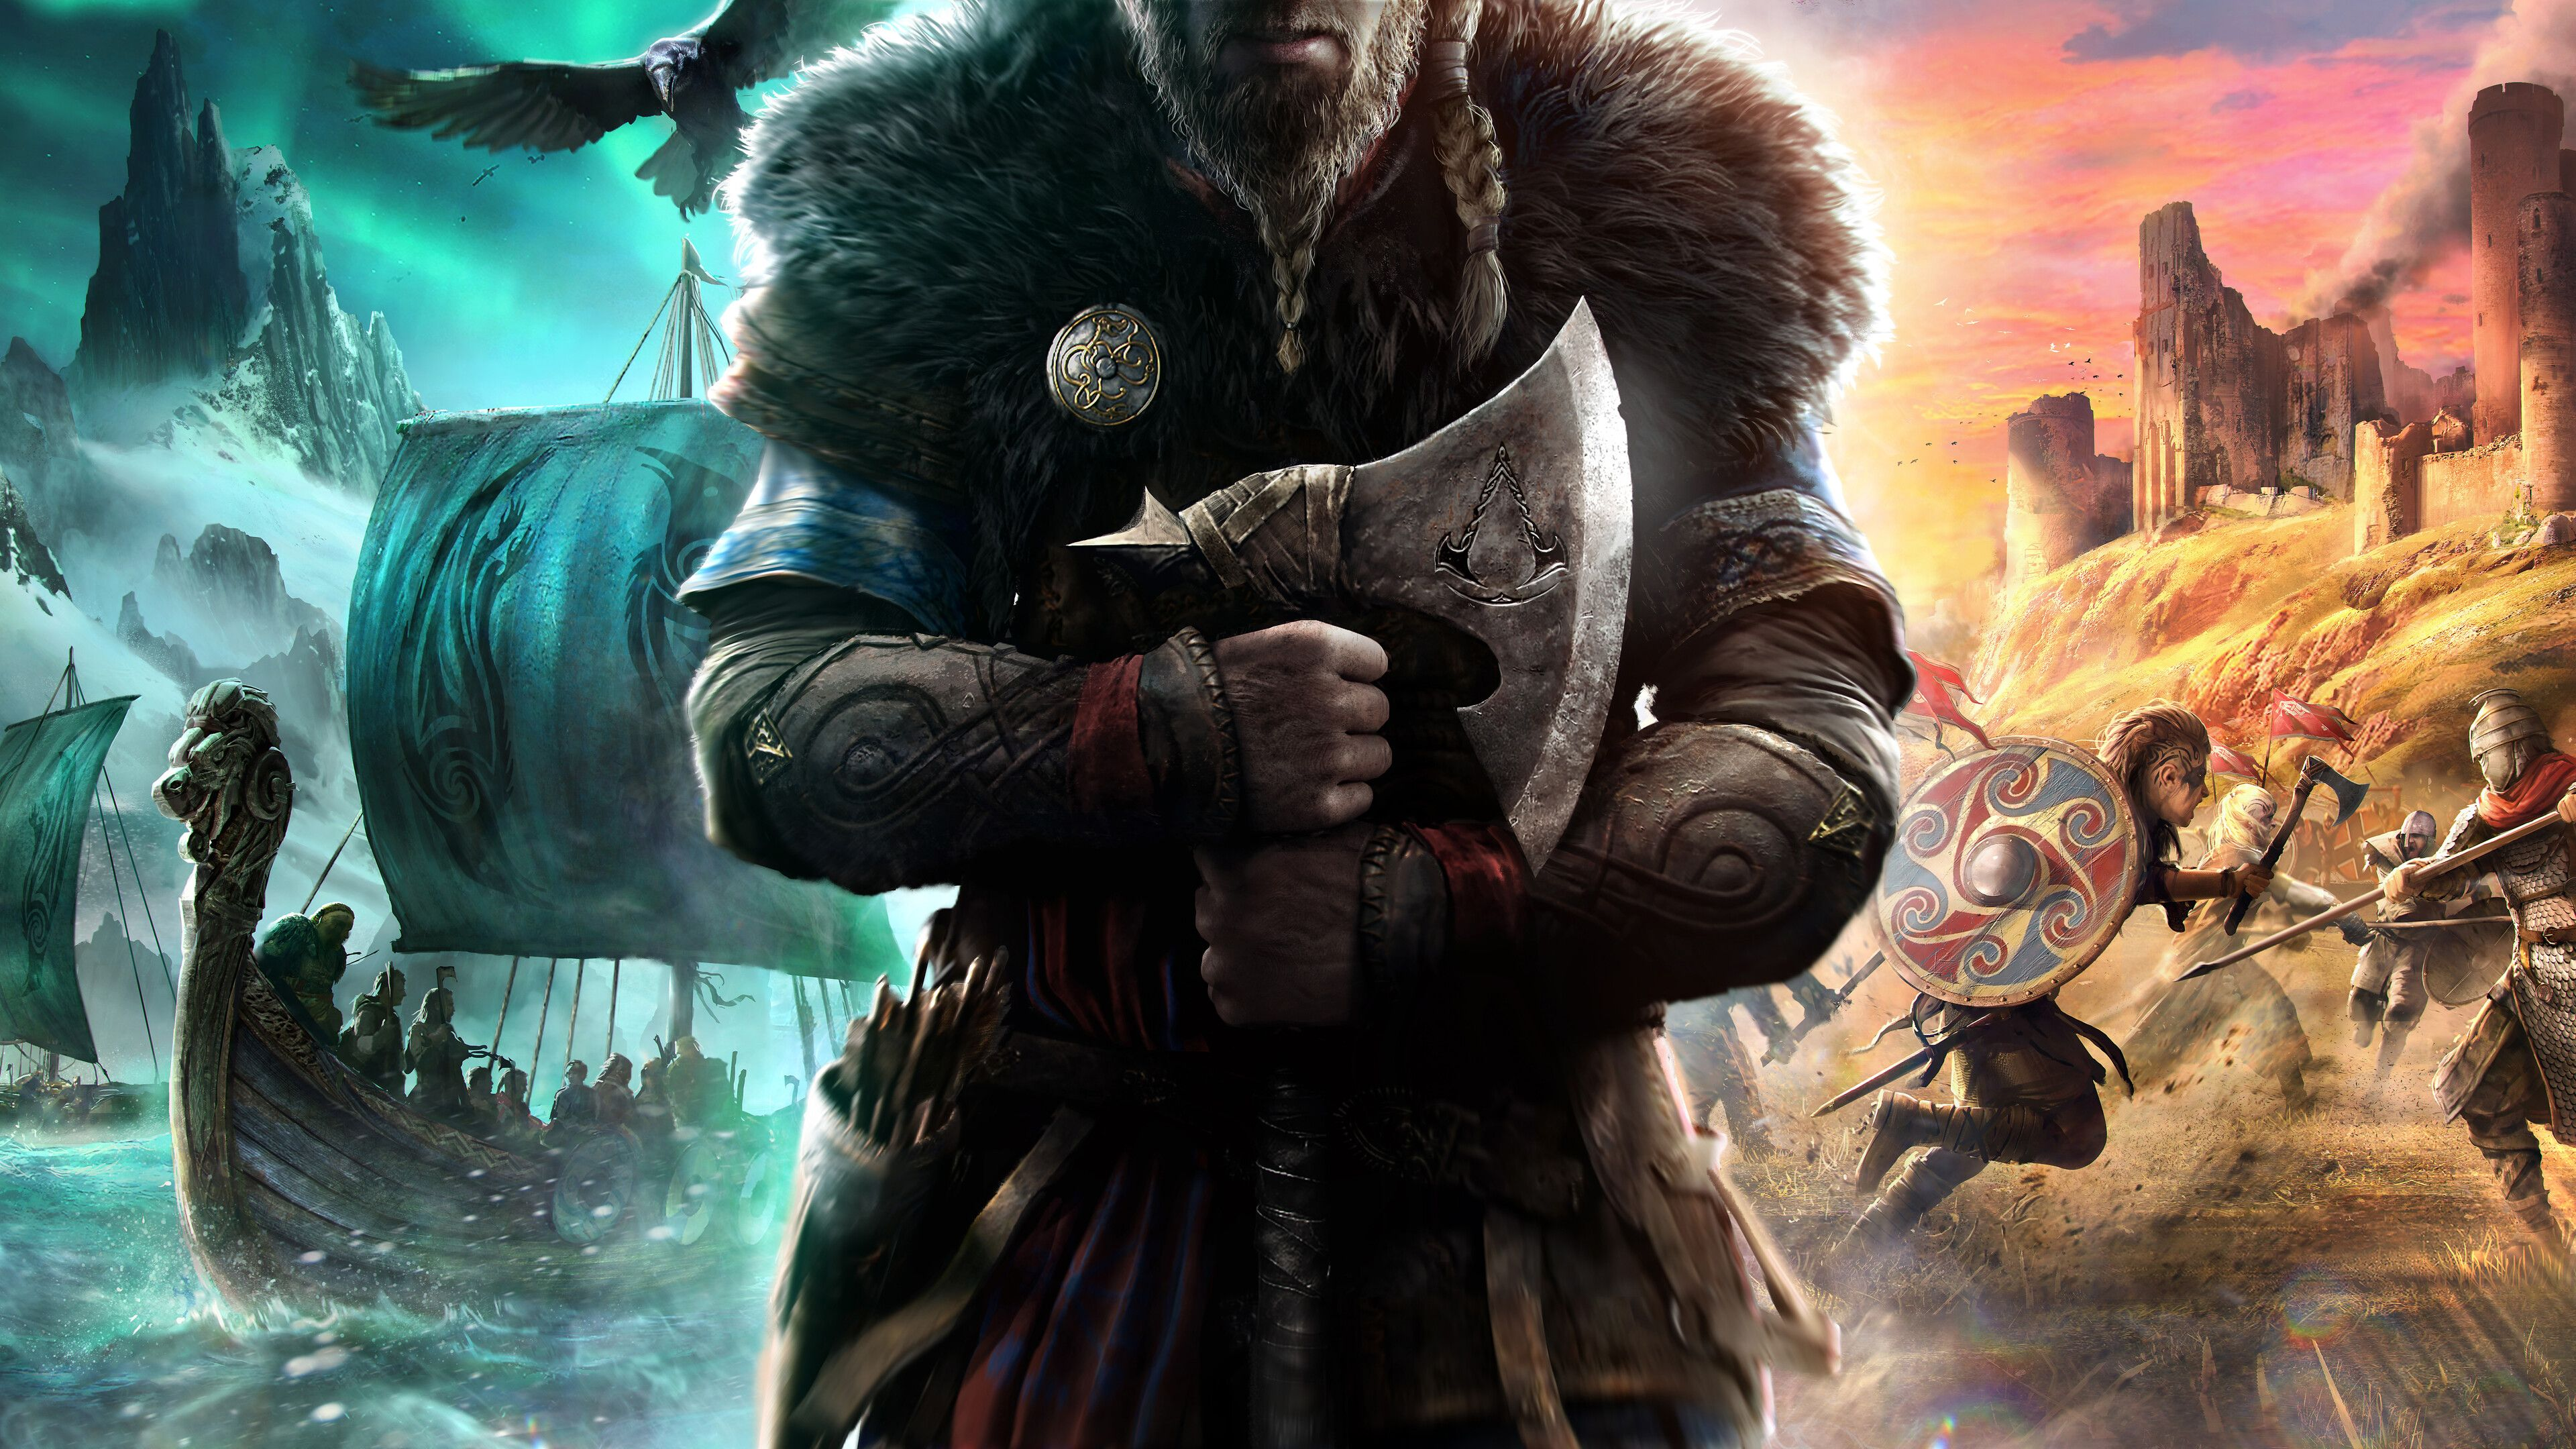 Assassins Creed Valhalla Wallpaper 4k In 2020 Assassins Creed Game Assassin S Creed Wallpaper Assassin S Creed